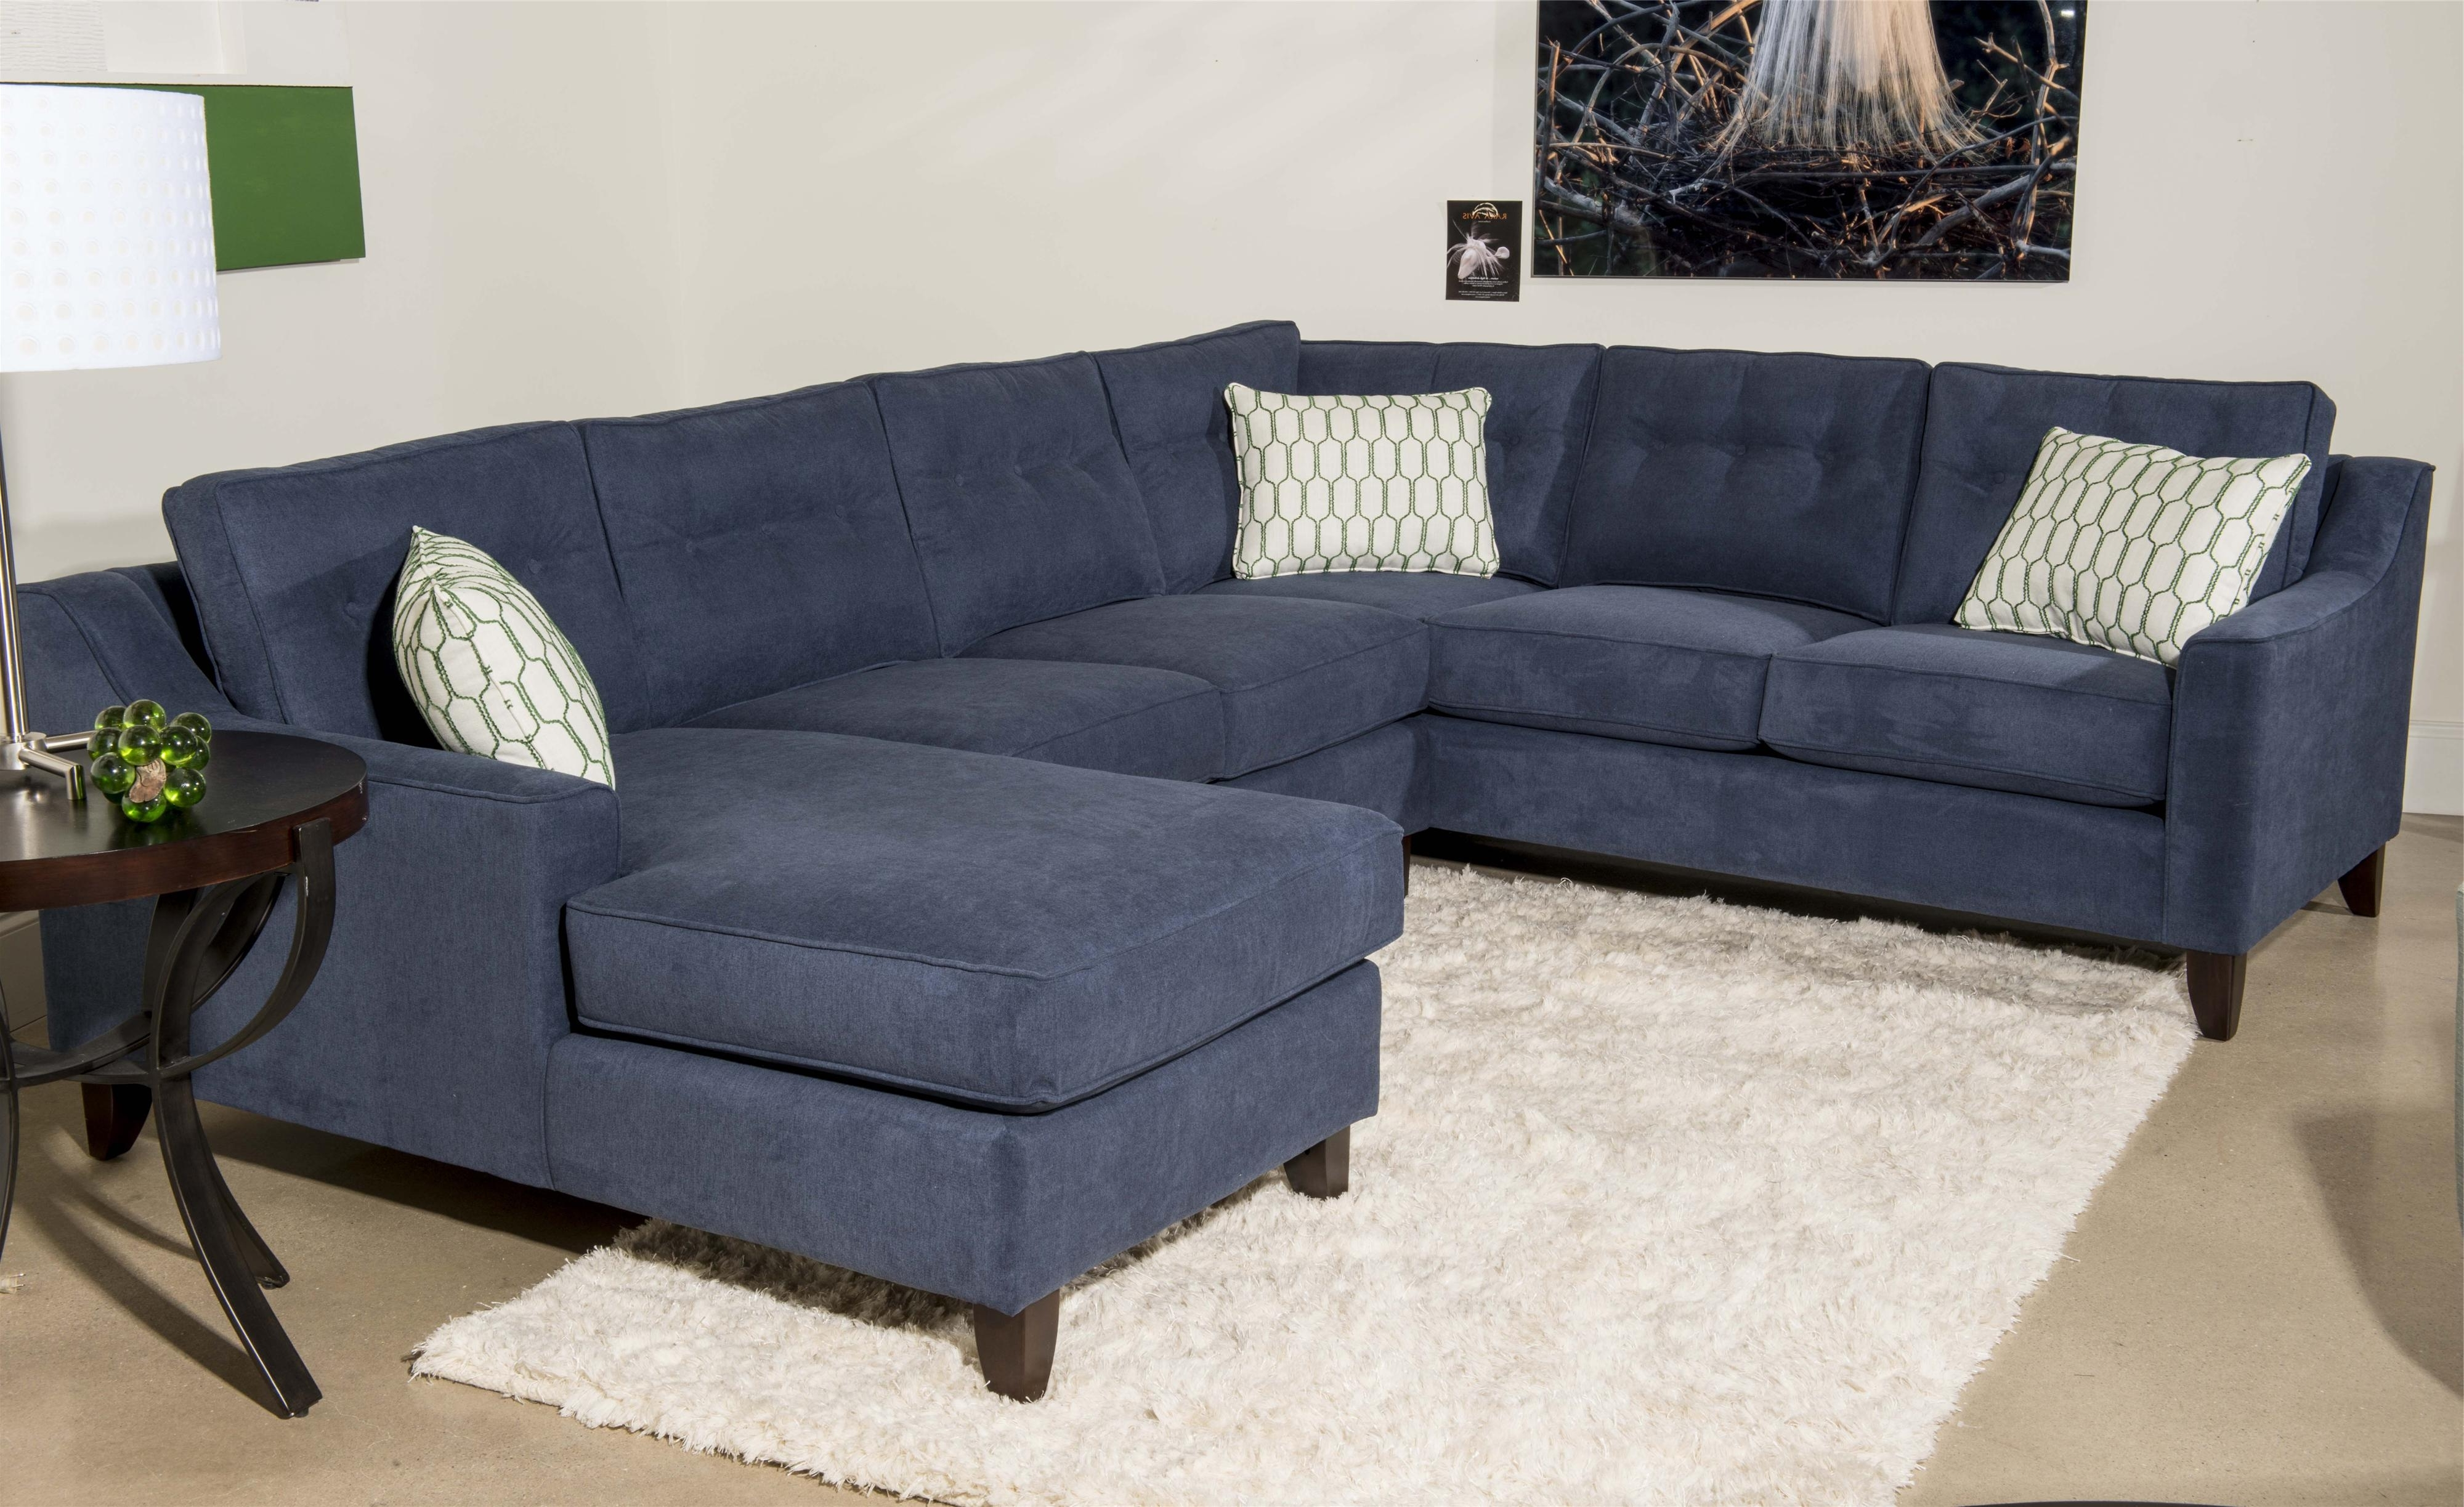 Best And Newest Gardiners Sectional Sofas With Contemporary 3 Piece Sectional Sofa With Chaiseklaussner (View 2 of 20)